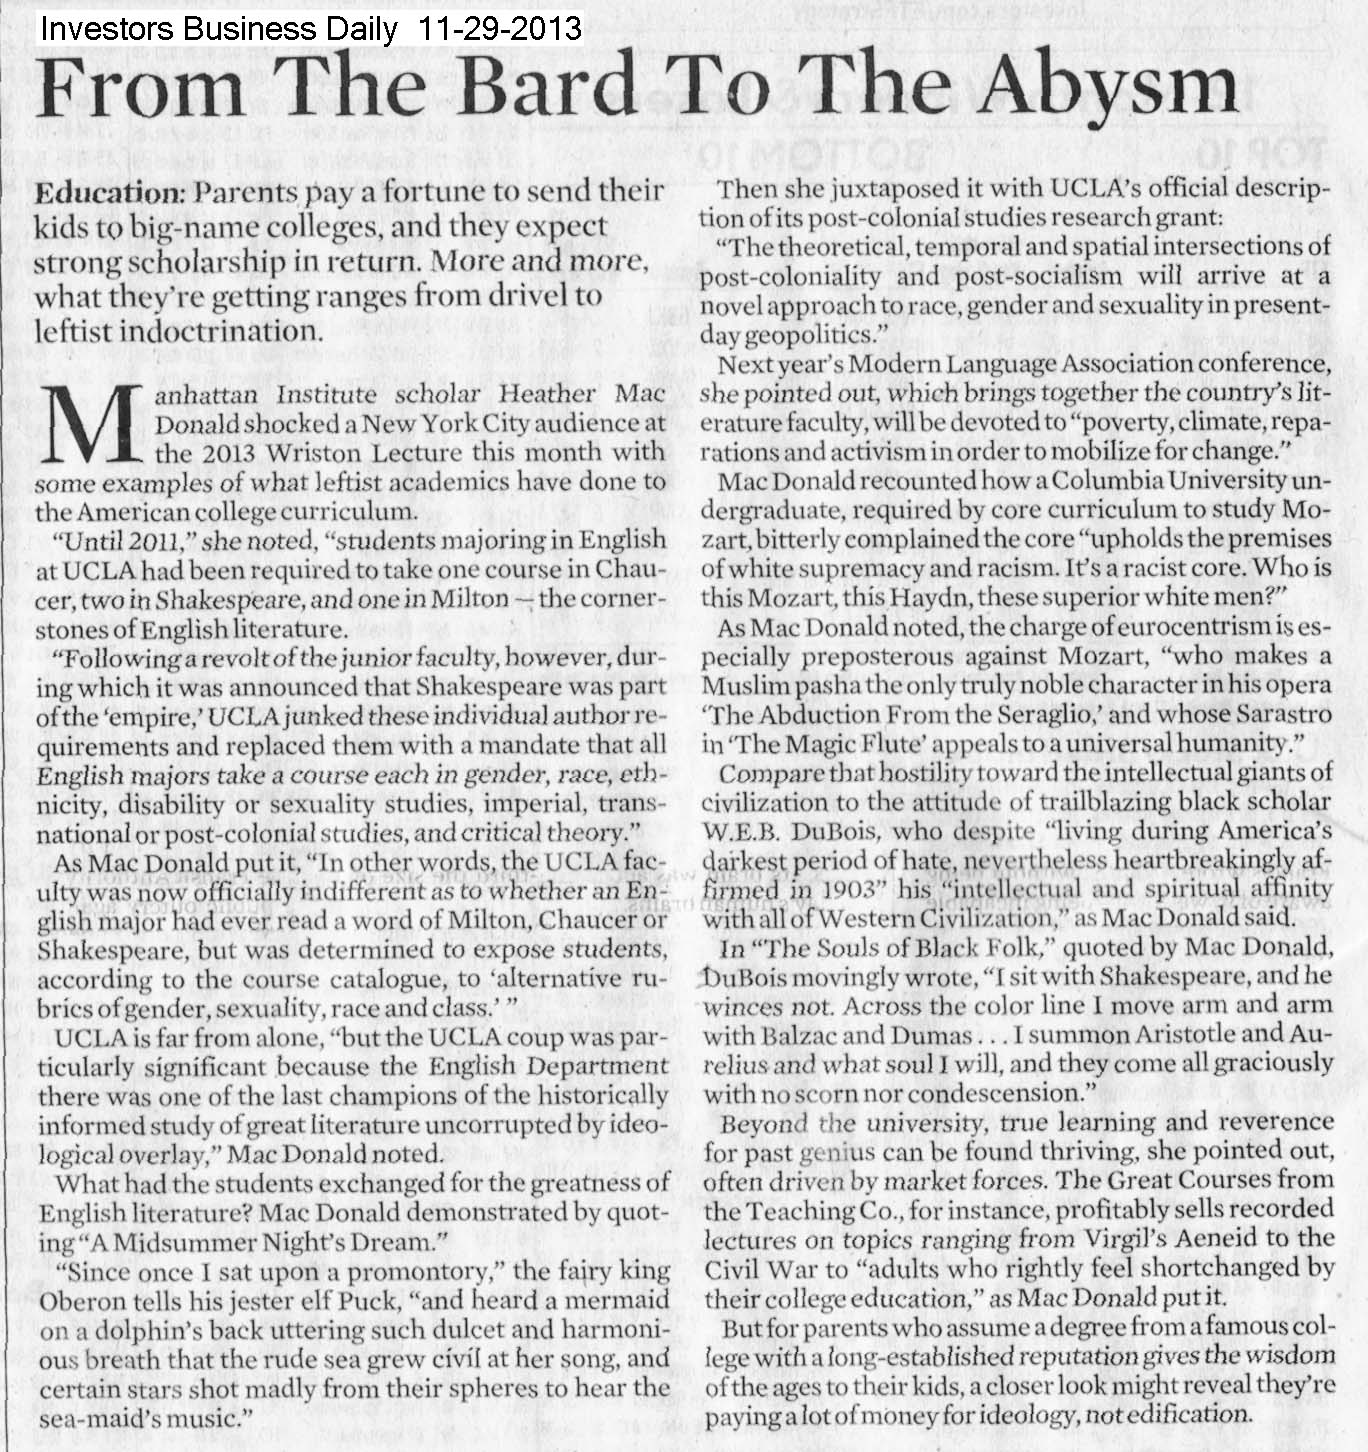 From The Bard To The Abysm